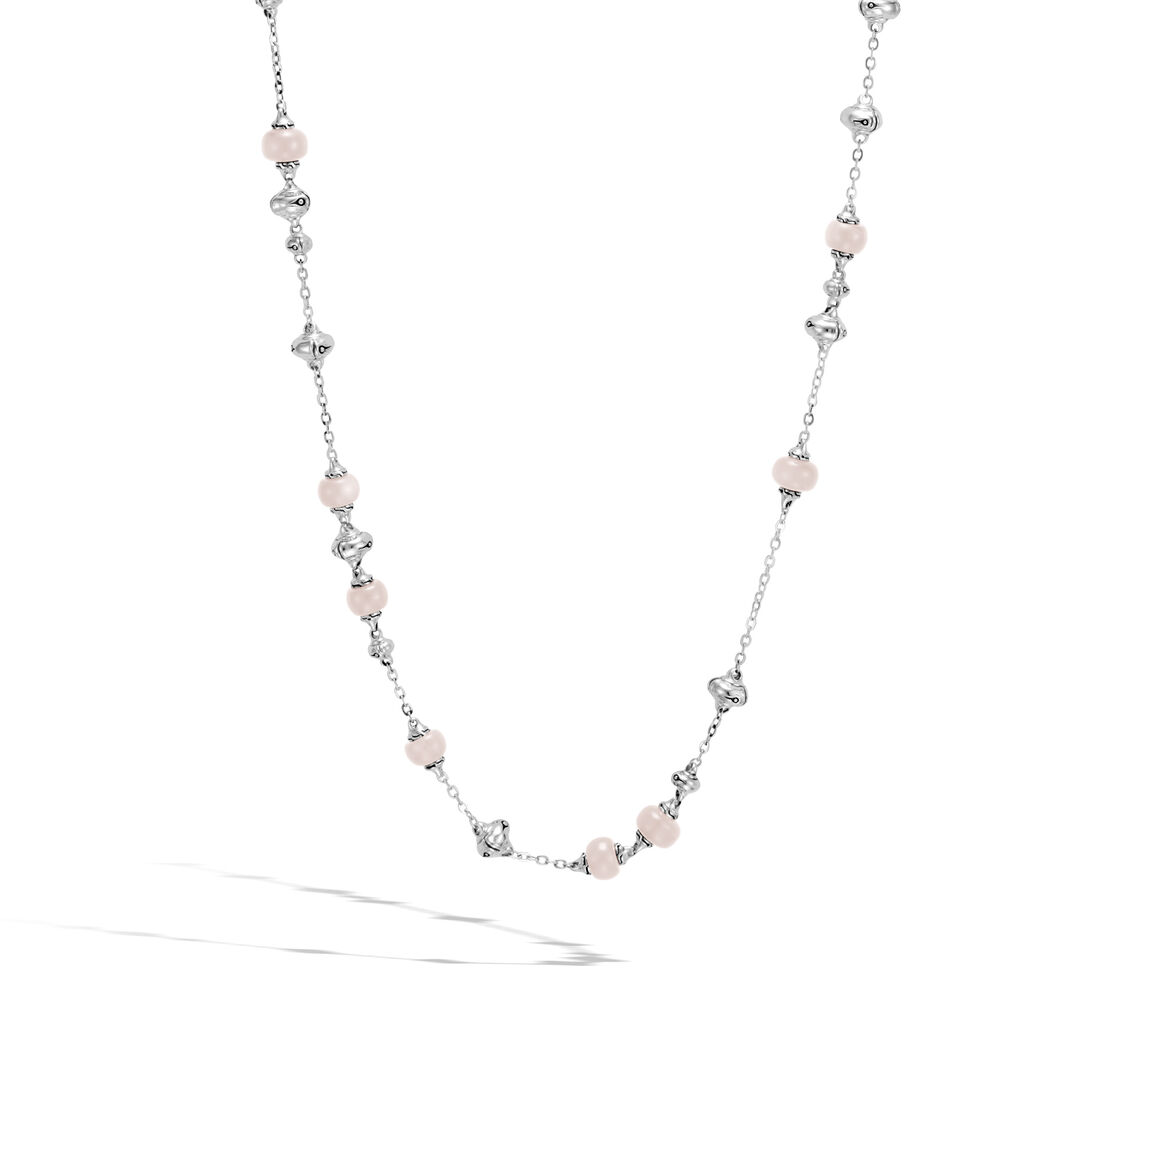 Bamboo Station Necklace in Silver with Gemstone